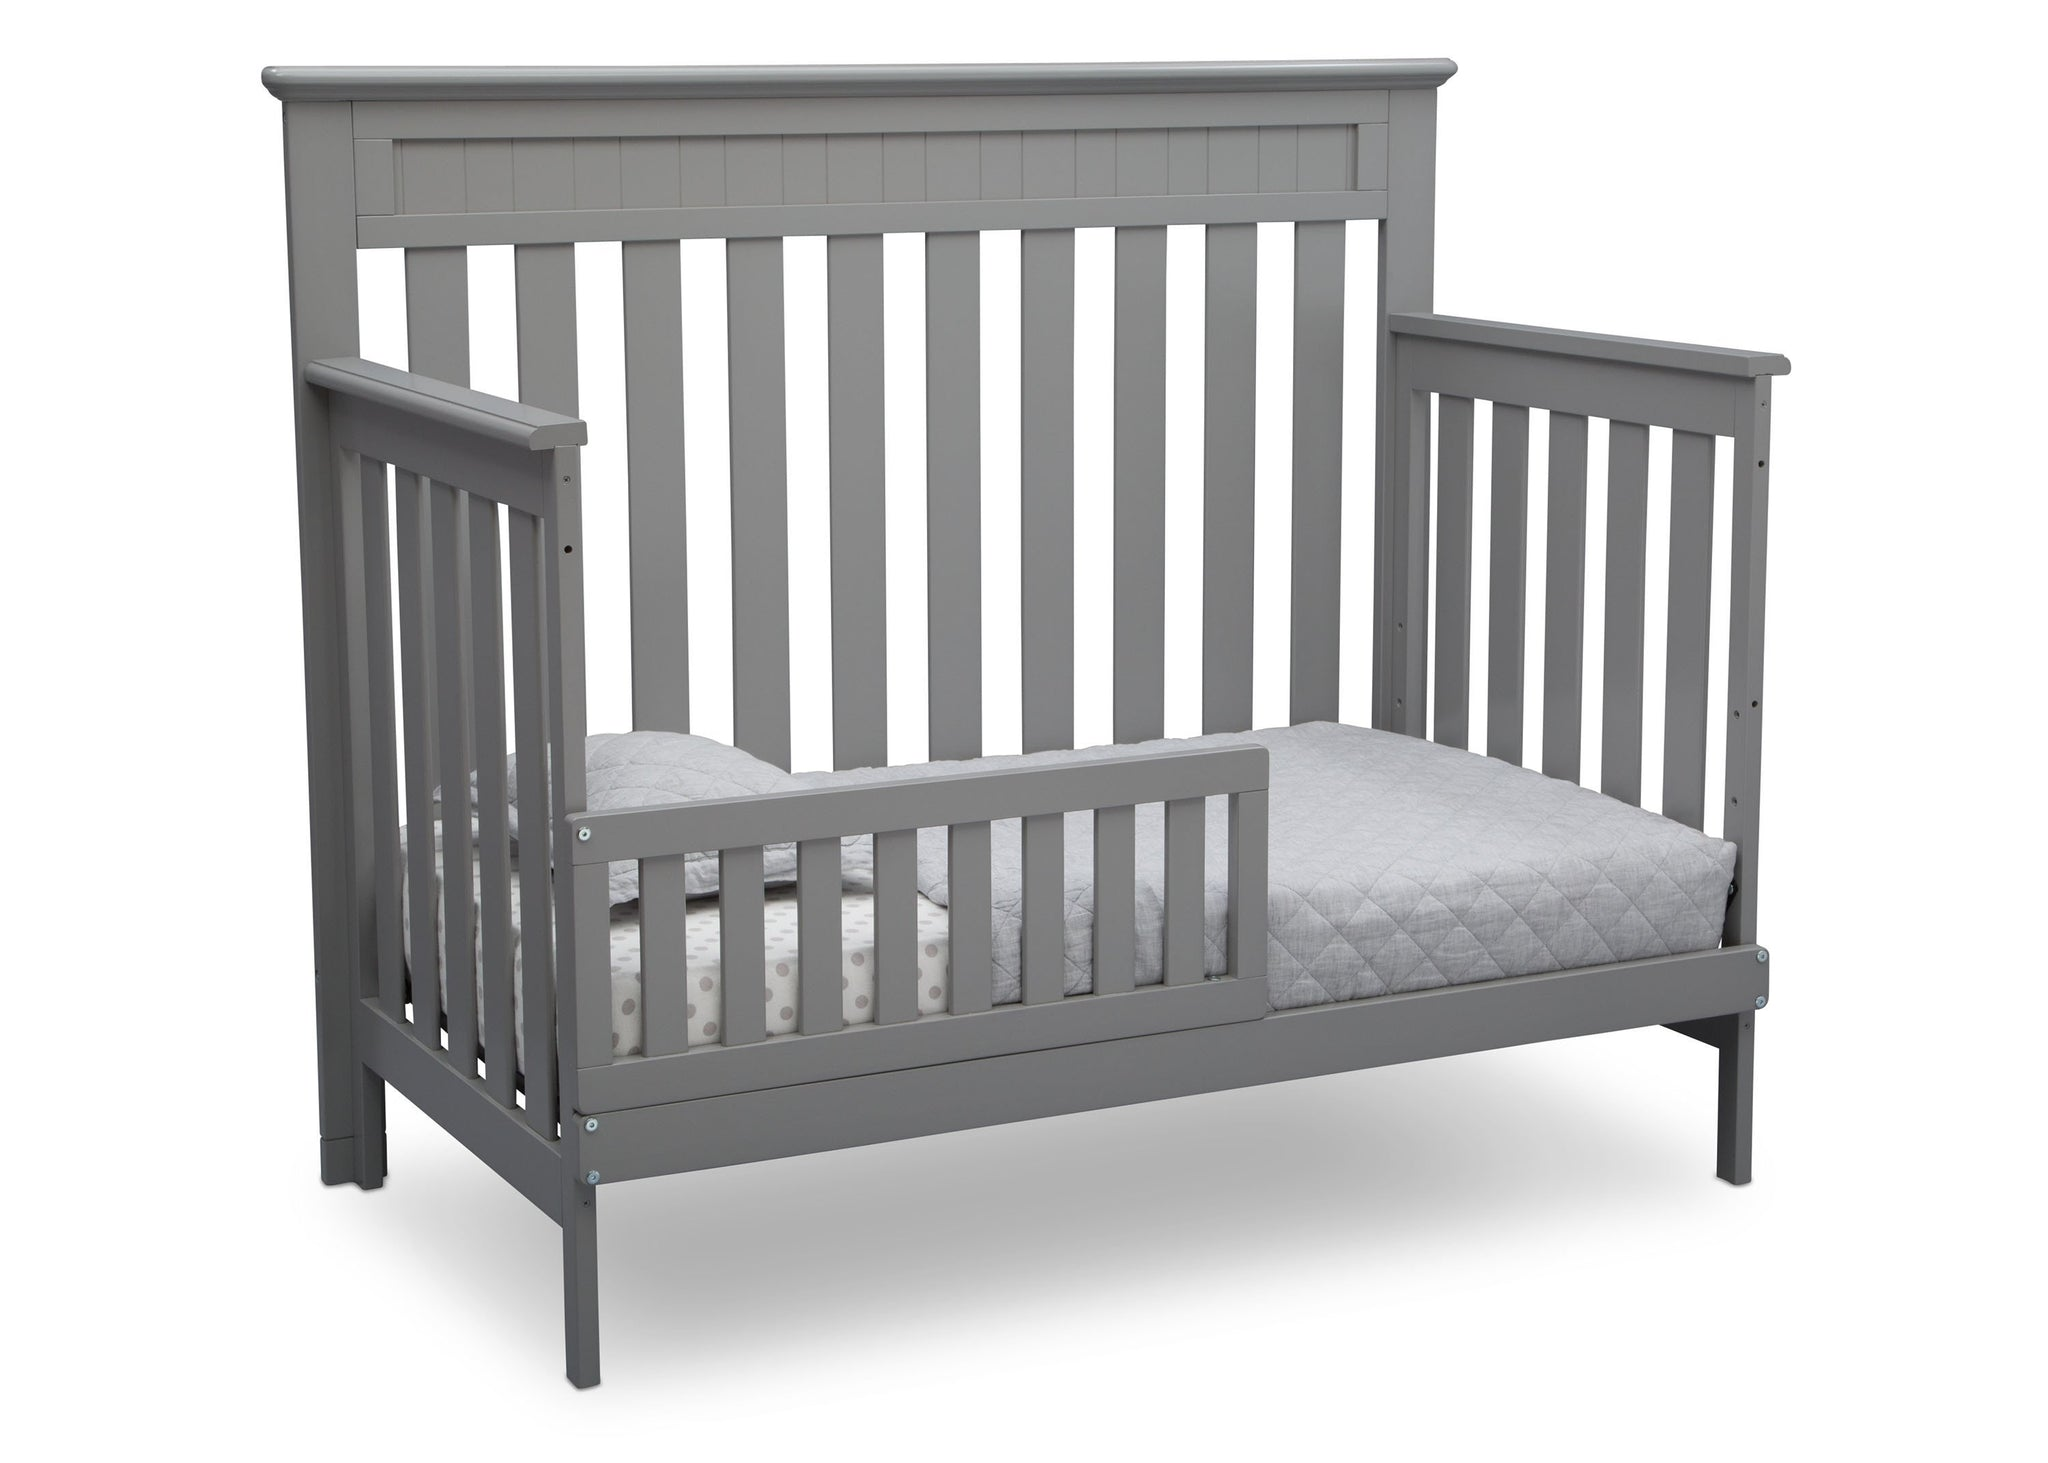 Delta Children Grey (026) Chalet 4-in-1 Crib, angled conversion to toddler bed, d5d